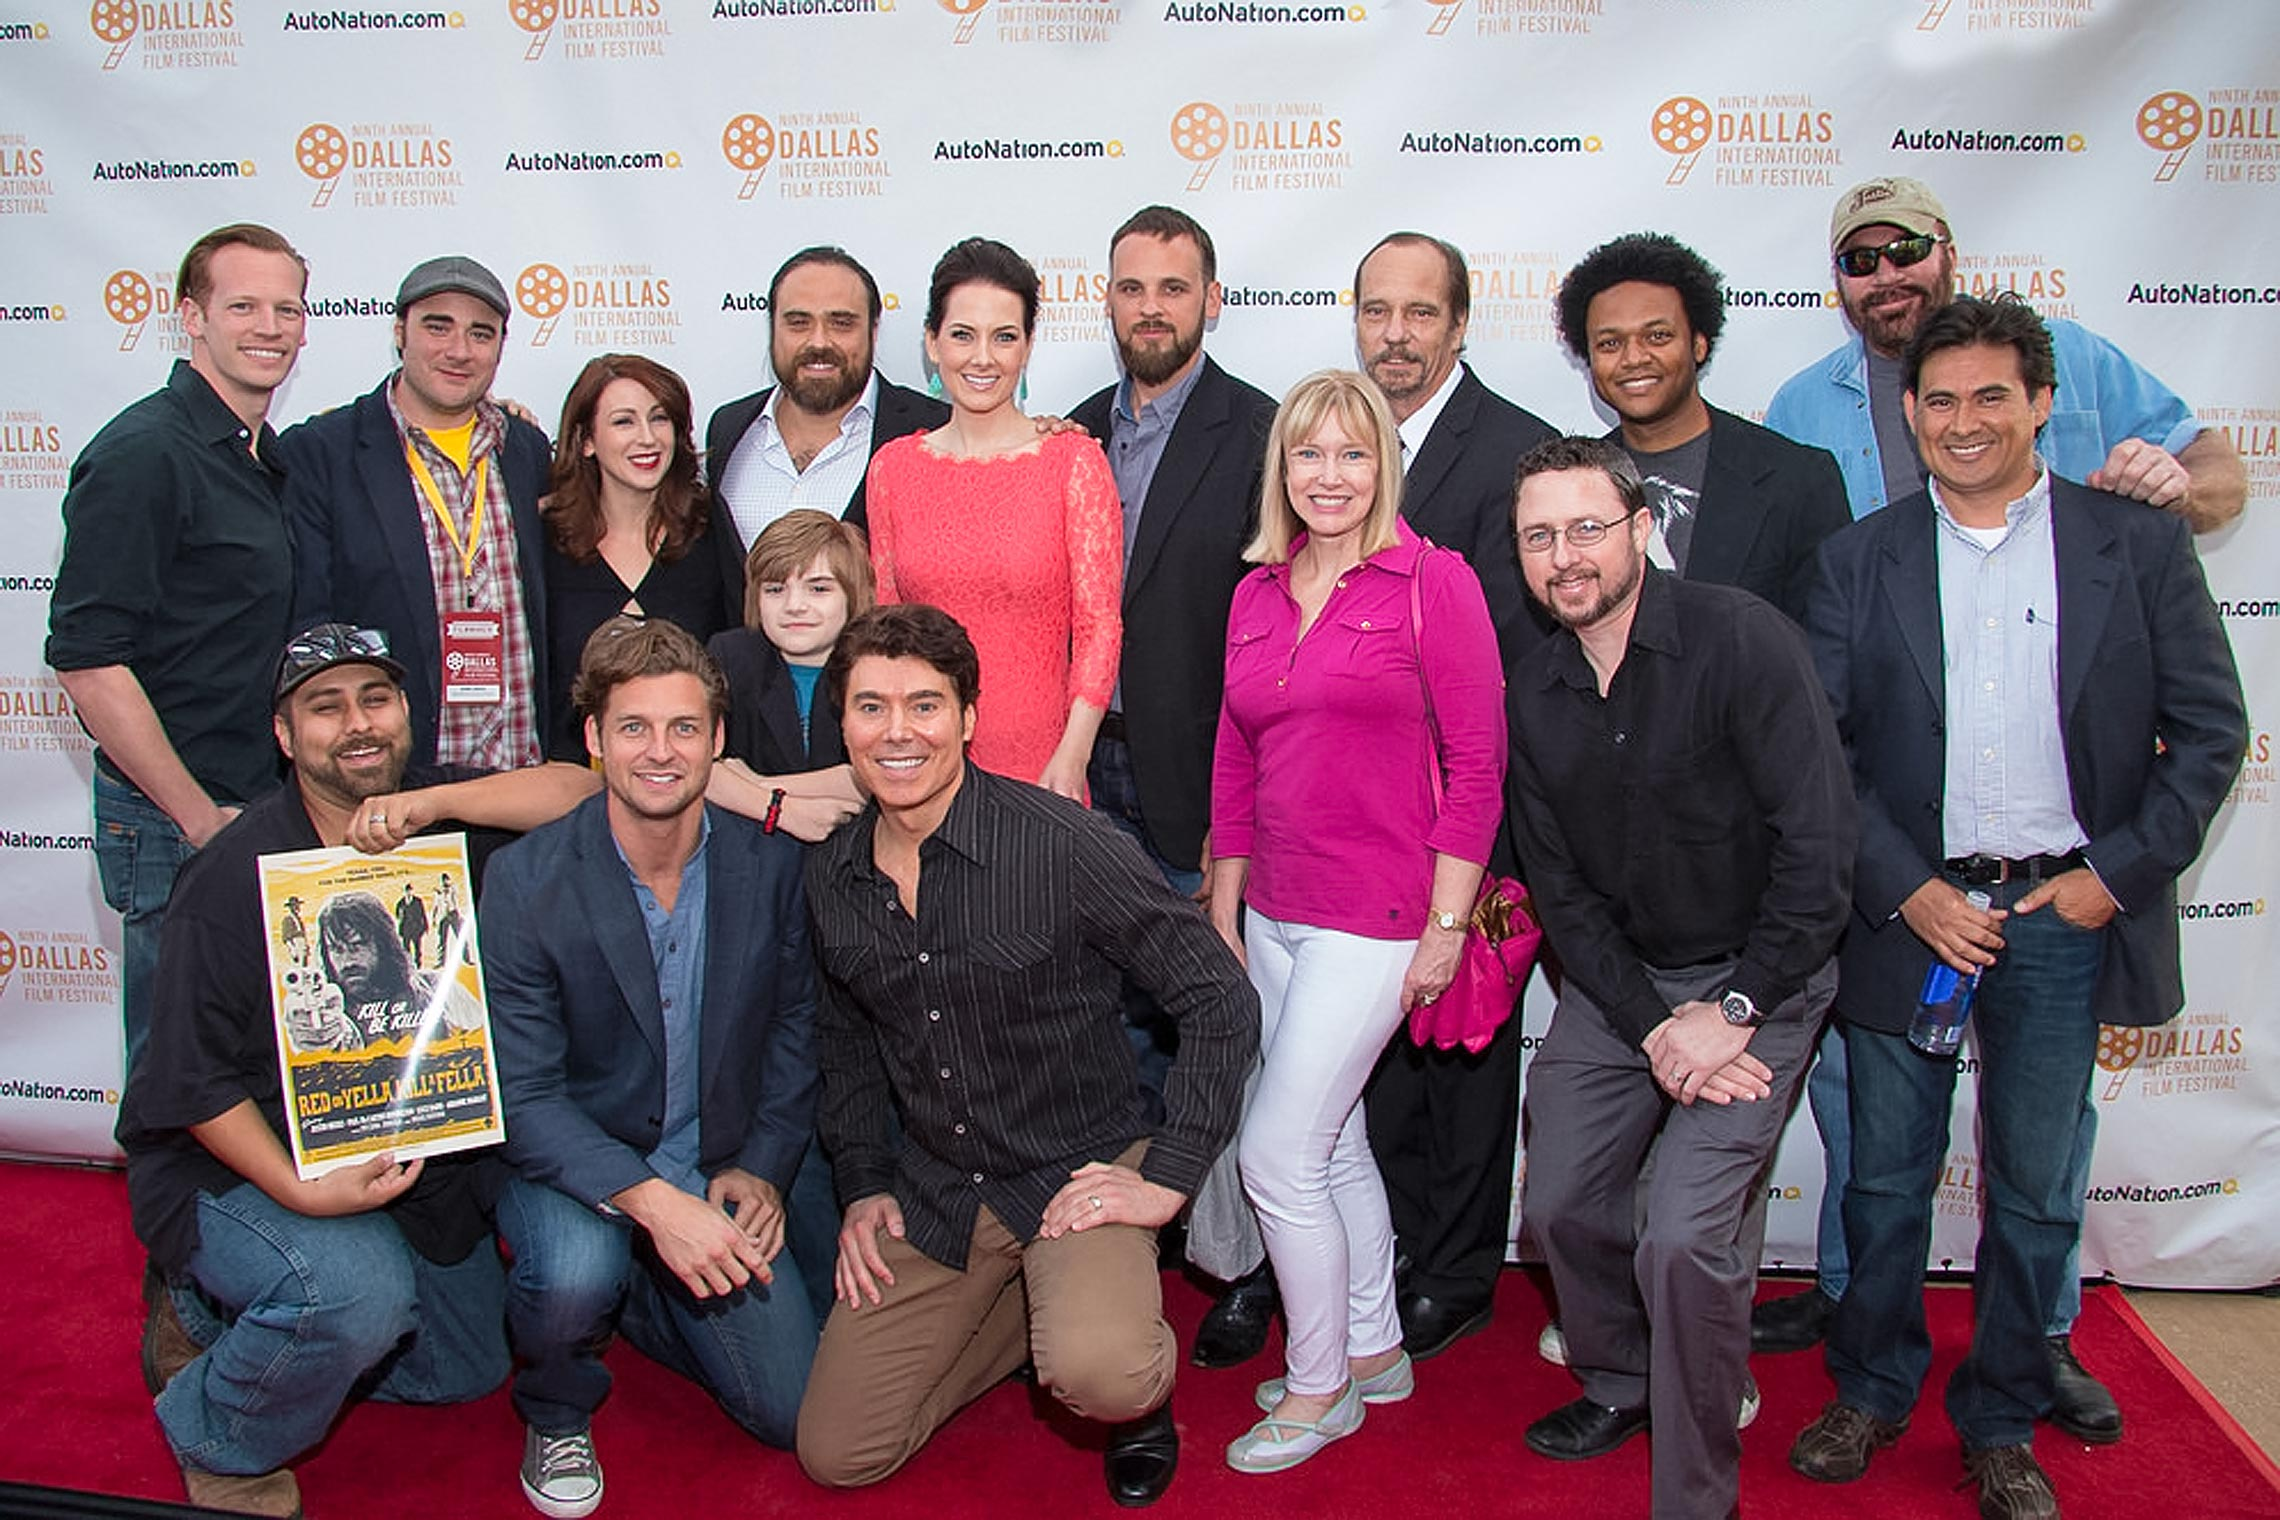 Red carpet shot of the cast, crew and directors of <em>Kill or Be Killed<em> at the Dallas International Film Festival.